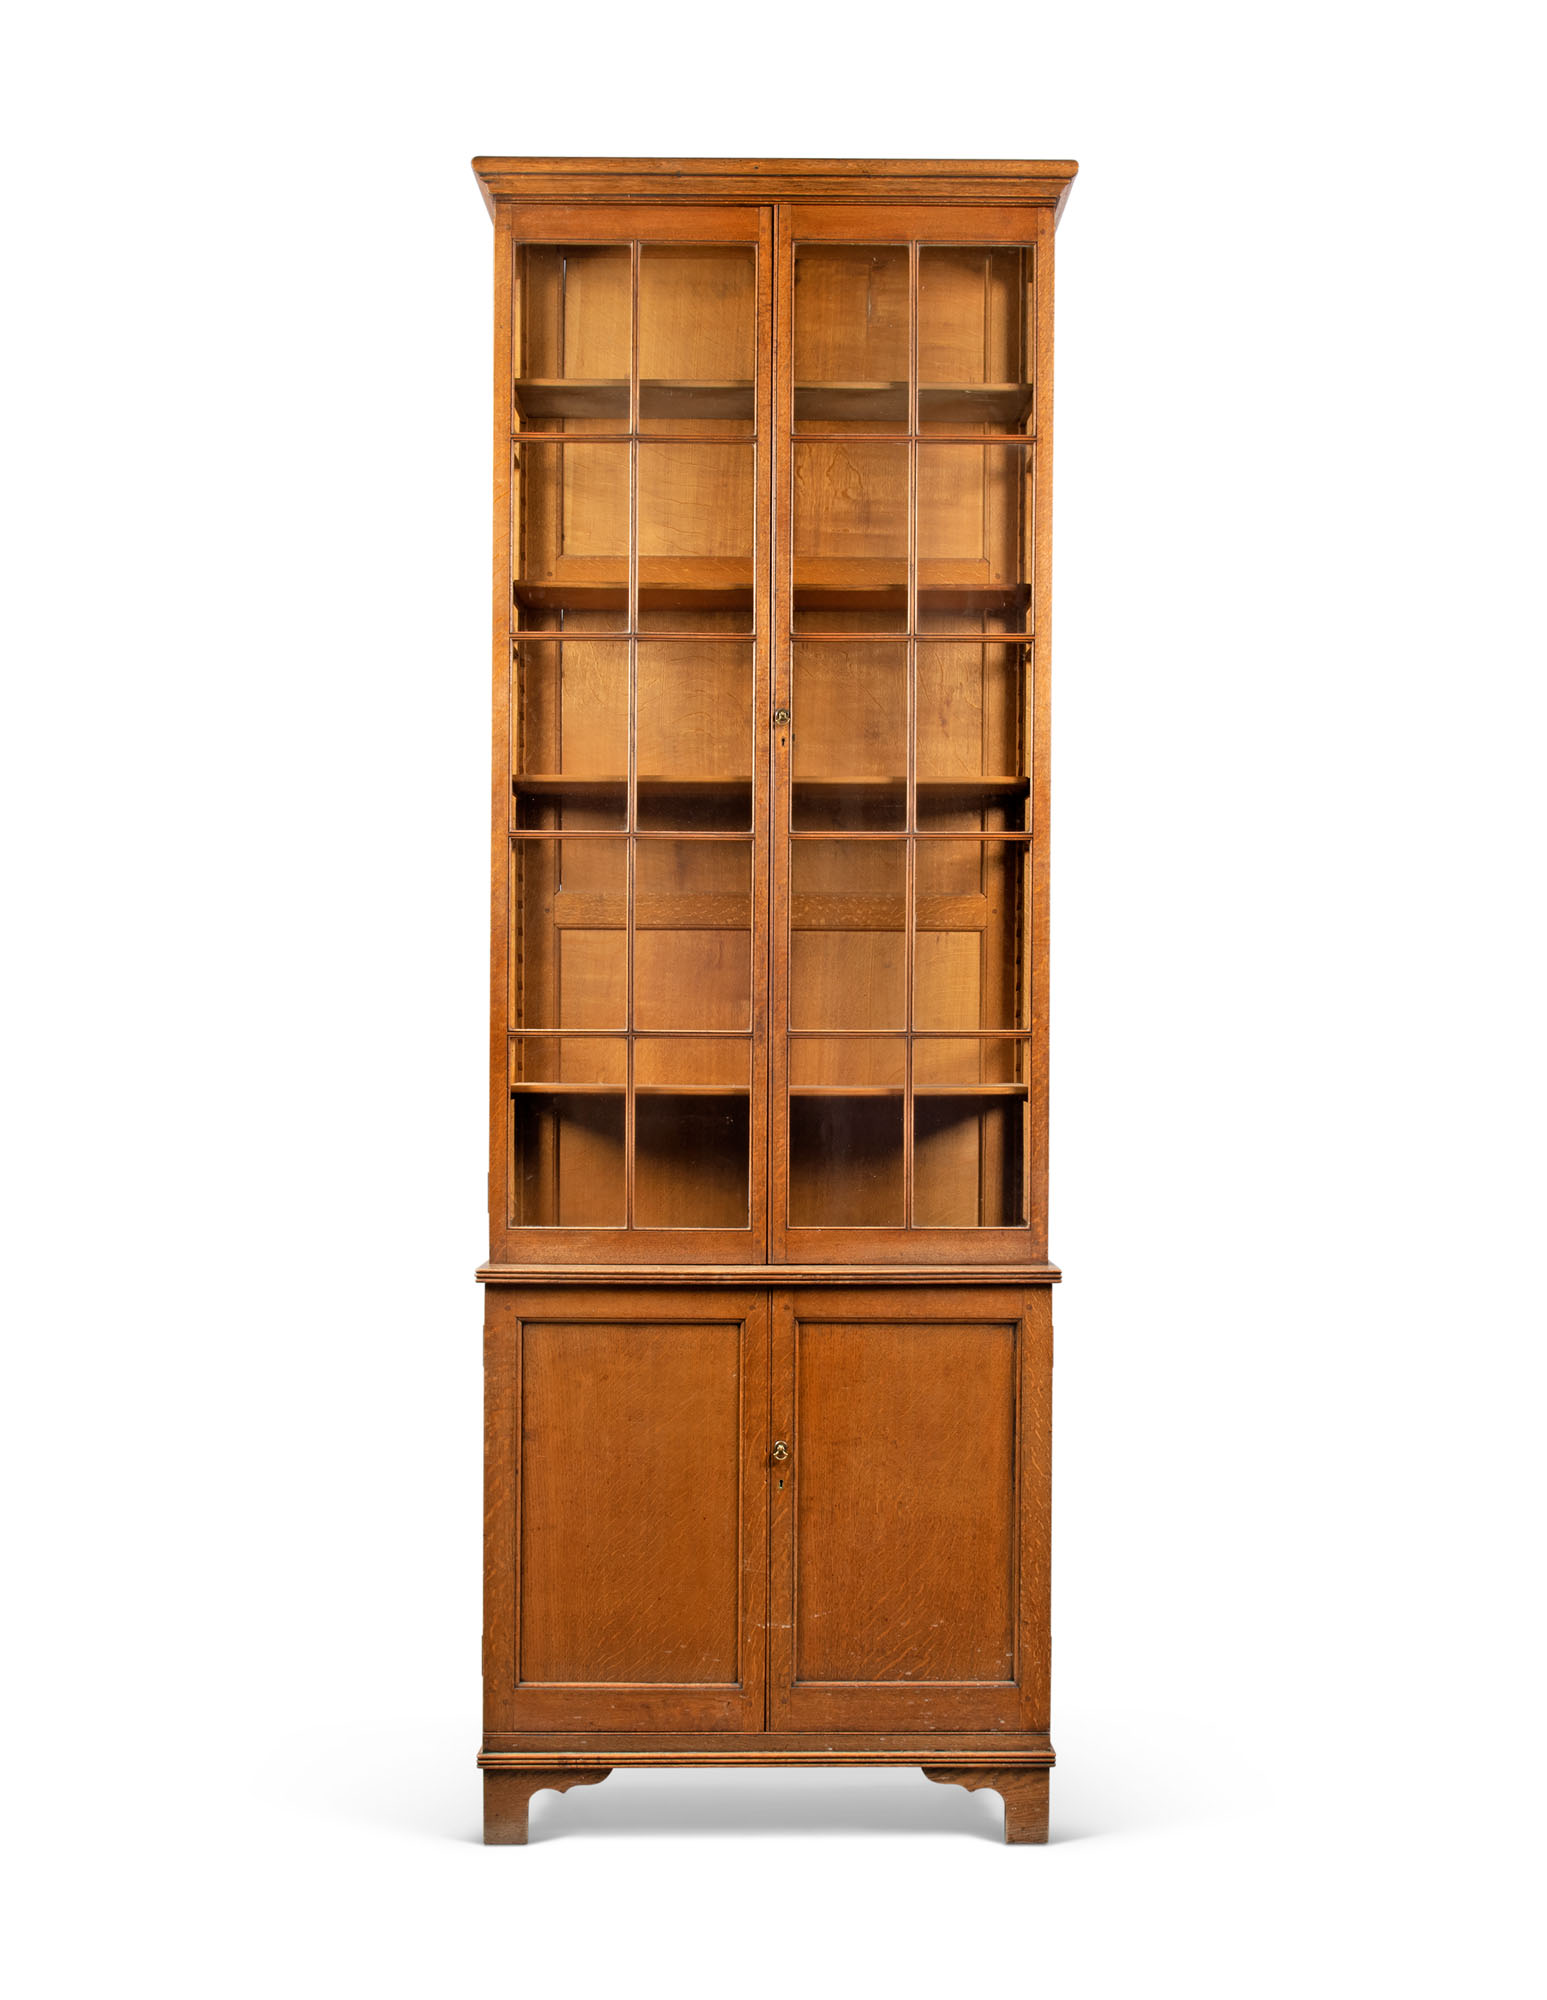 A SCOTTISH ARTS AND CRAFTS OAK LIBRARY BOOKCASE